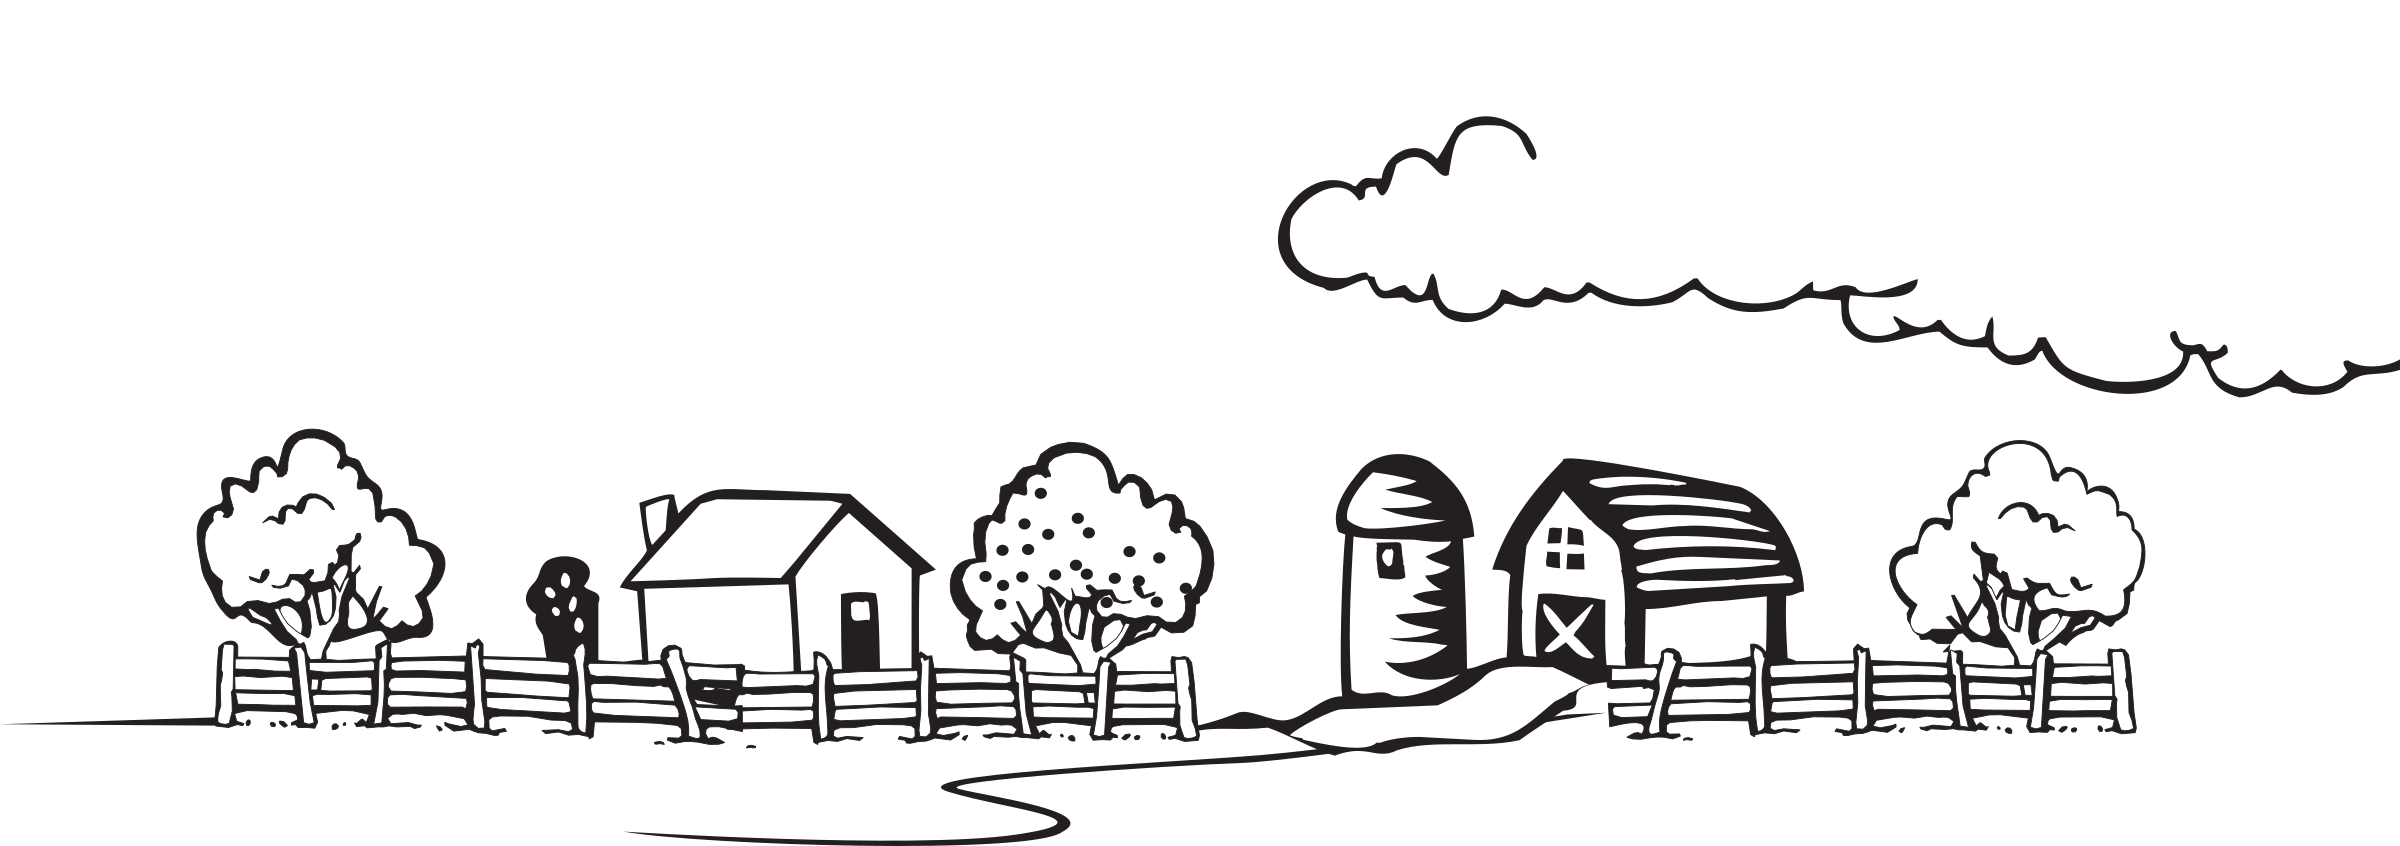 clipart free stock  collection of coloring. Farm clipart black and white